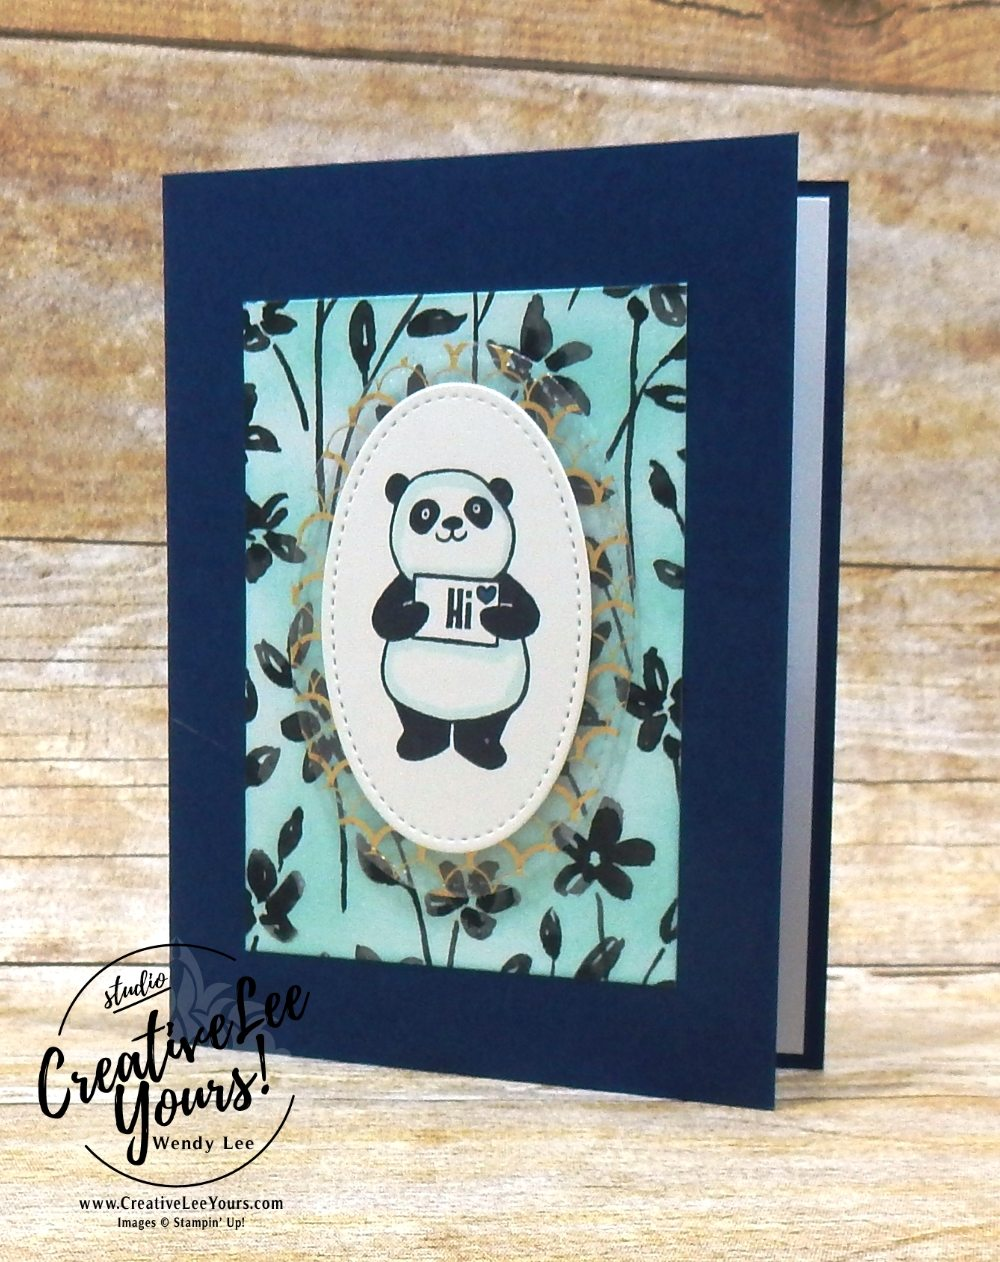 Happy Panda by Belinda Rodgers,Wendy lee, Stampin Up, stamping, hand made, friend, teacher appreciation, secretaries day, birthday,mothers day,#creativeleeyours, creatively yours, creative-lee yours,diemonds team swap, SAB, Sale-a-bration,party panda stamp set, happy wishes stamp set,FREE stamps,SU,SU cards,rubber stamps